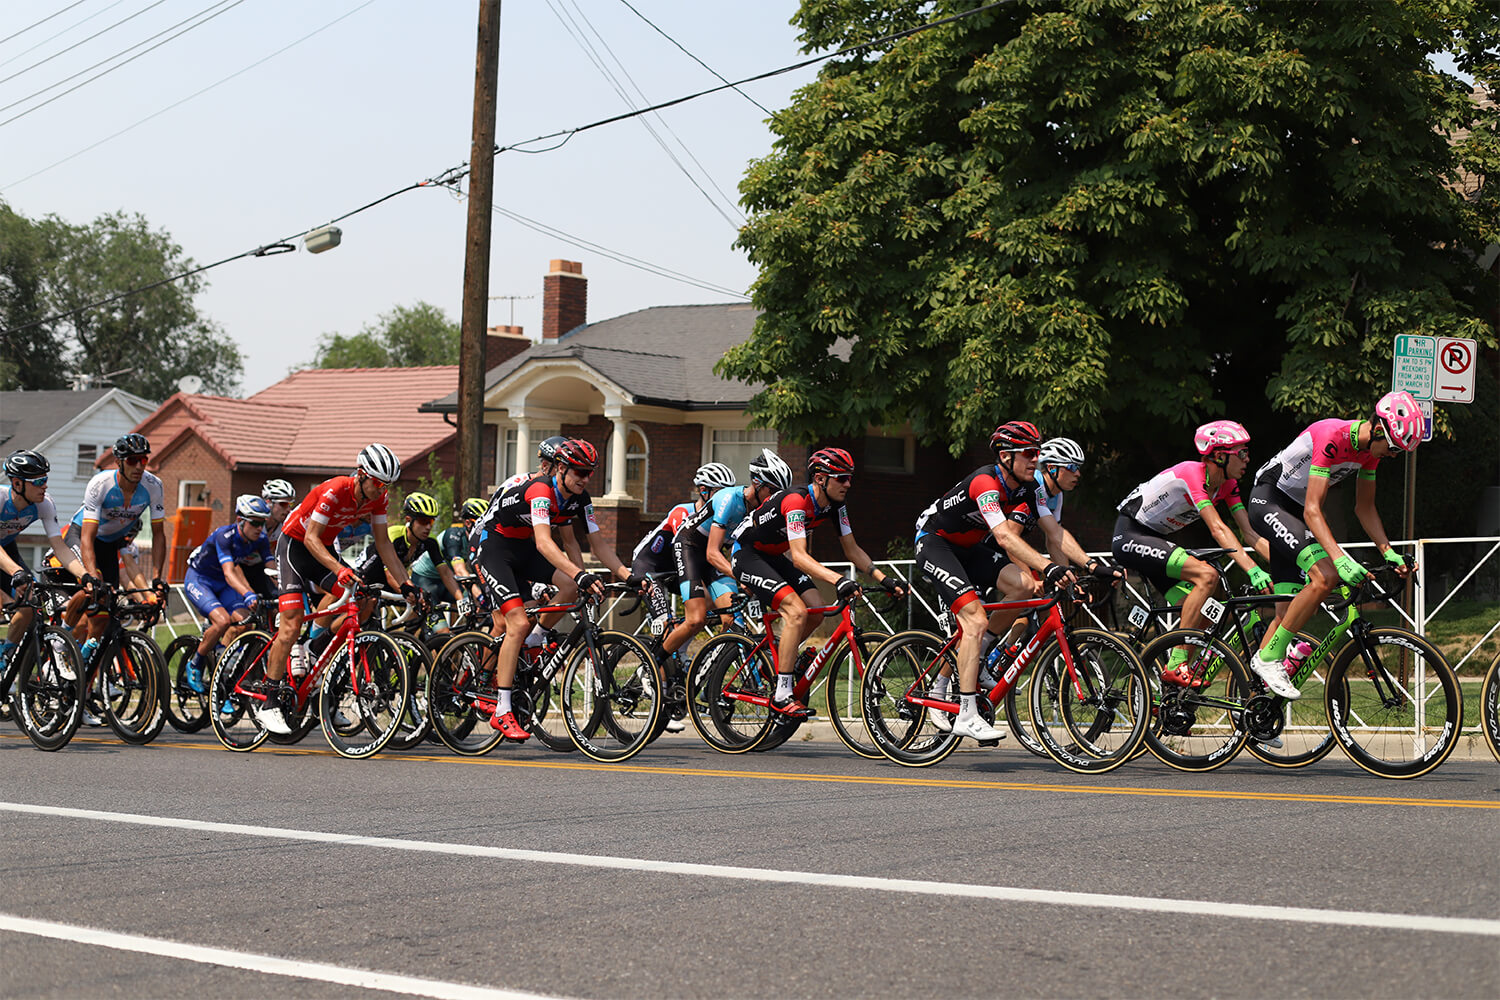 Contender Salt Lake City Stage Tour of Utah 2018 peloton behind the capitol with BMC Racing Team